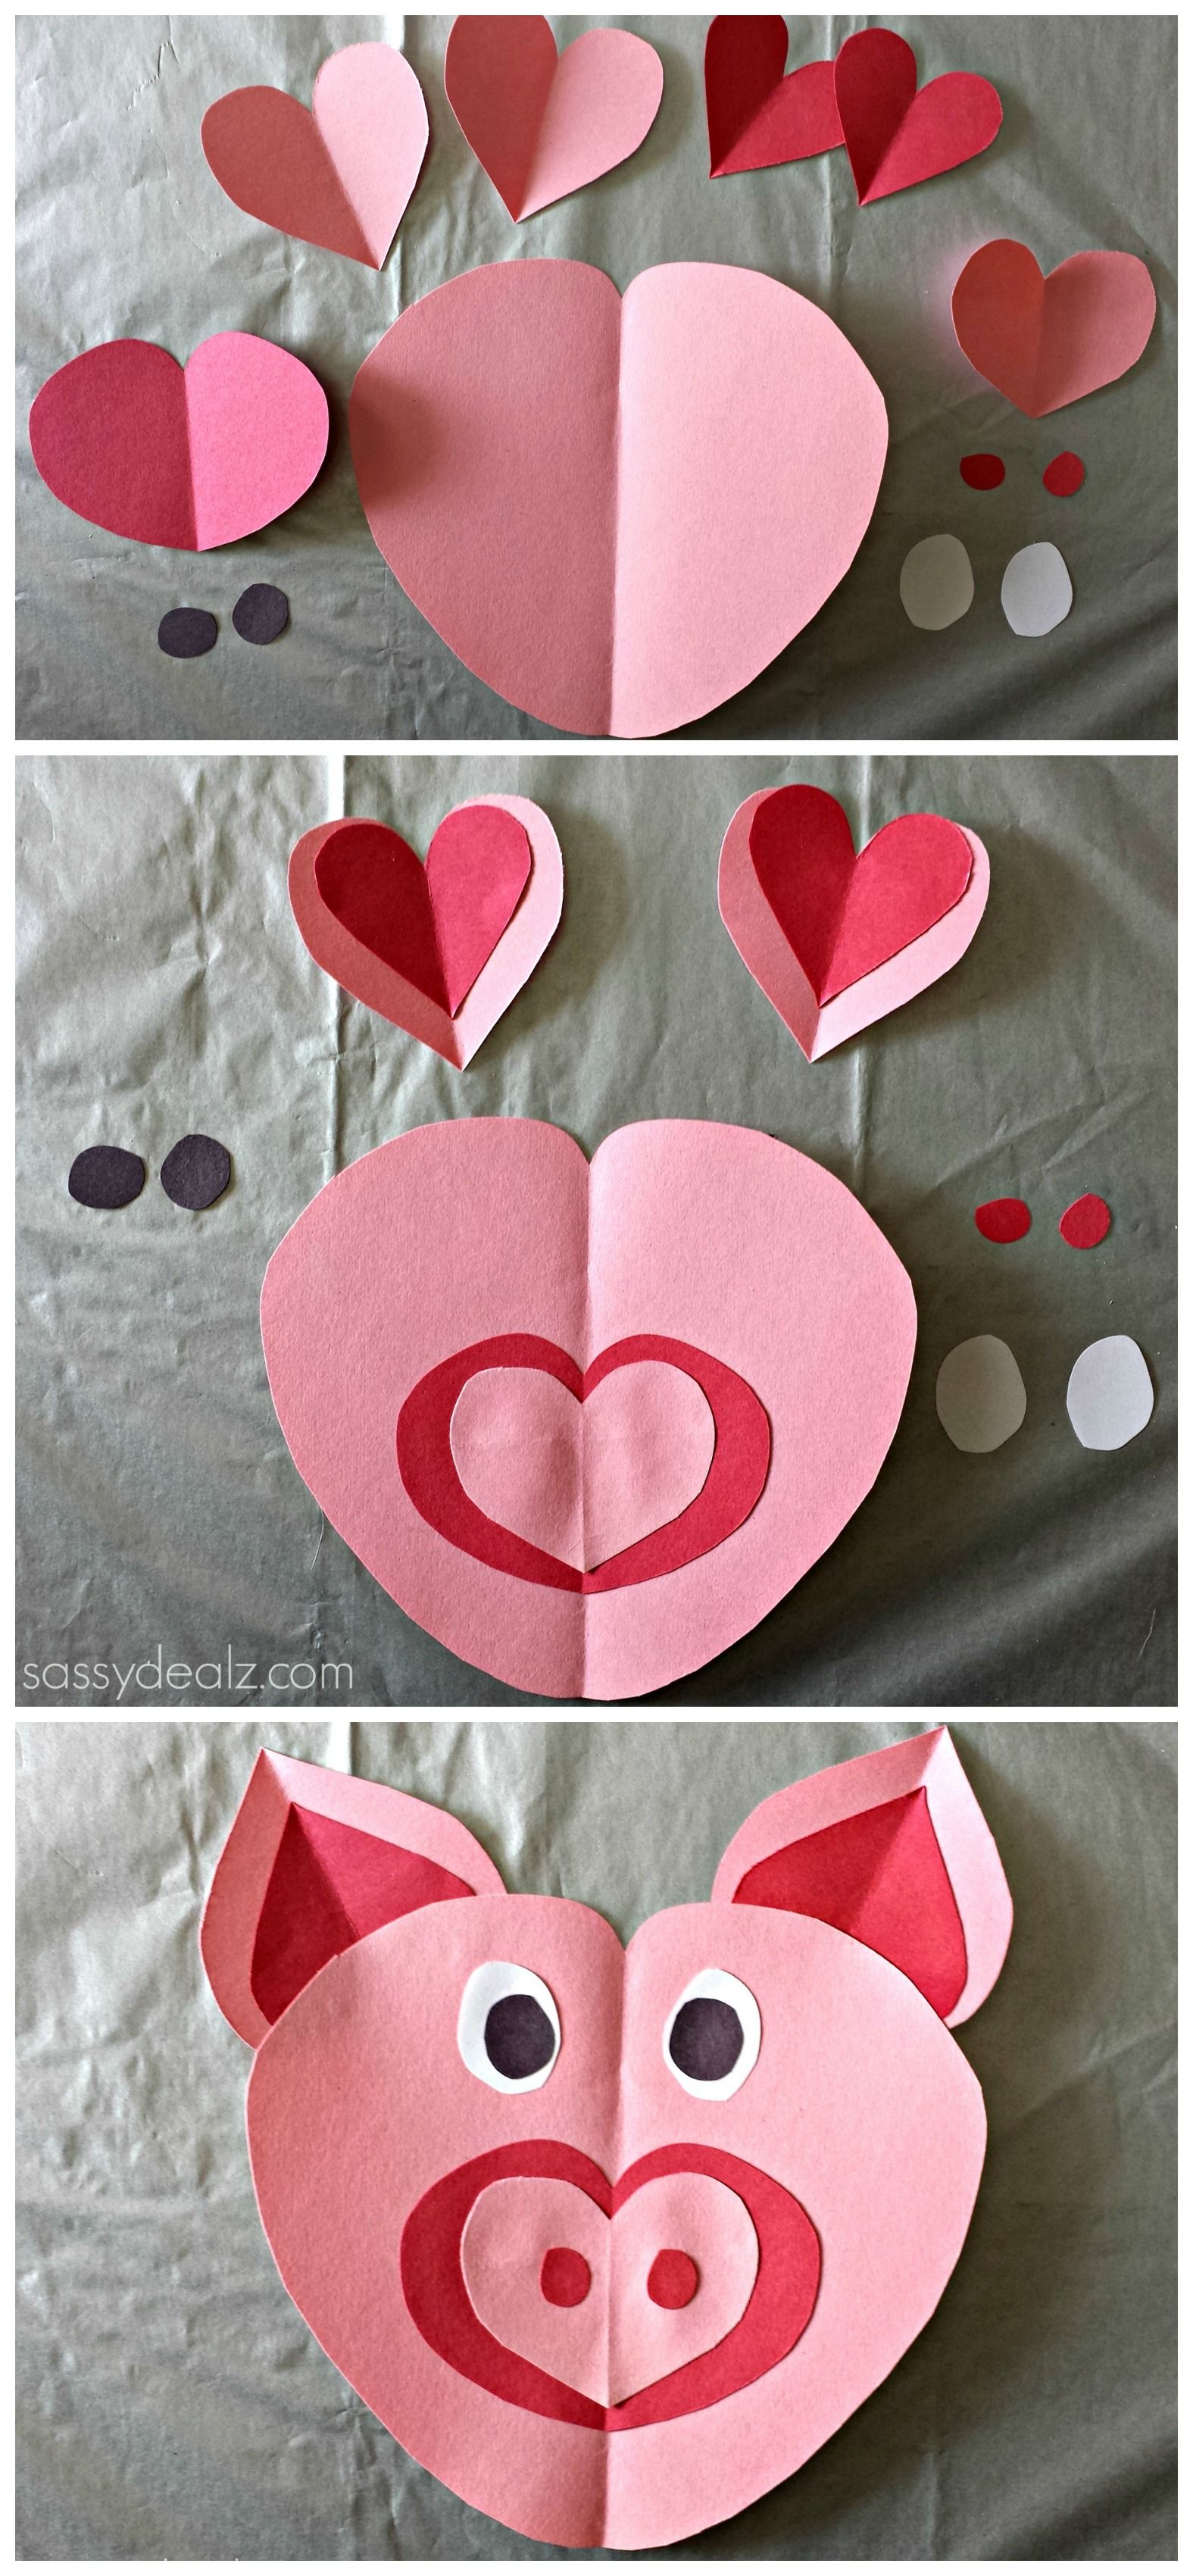 cochon fait en coeurs activite enfant pinterest saint valentin bricolage et enfant. Black Bedroom Furniture Sets. Home Design Ideas